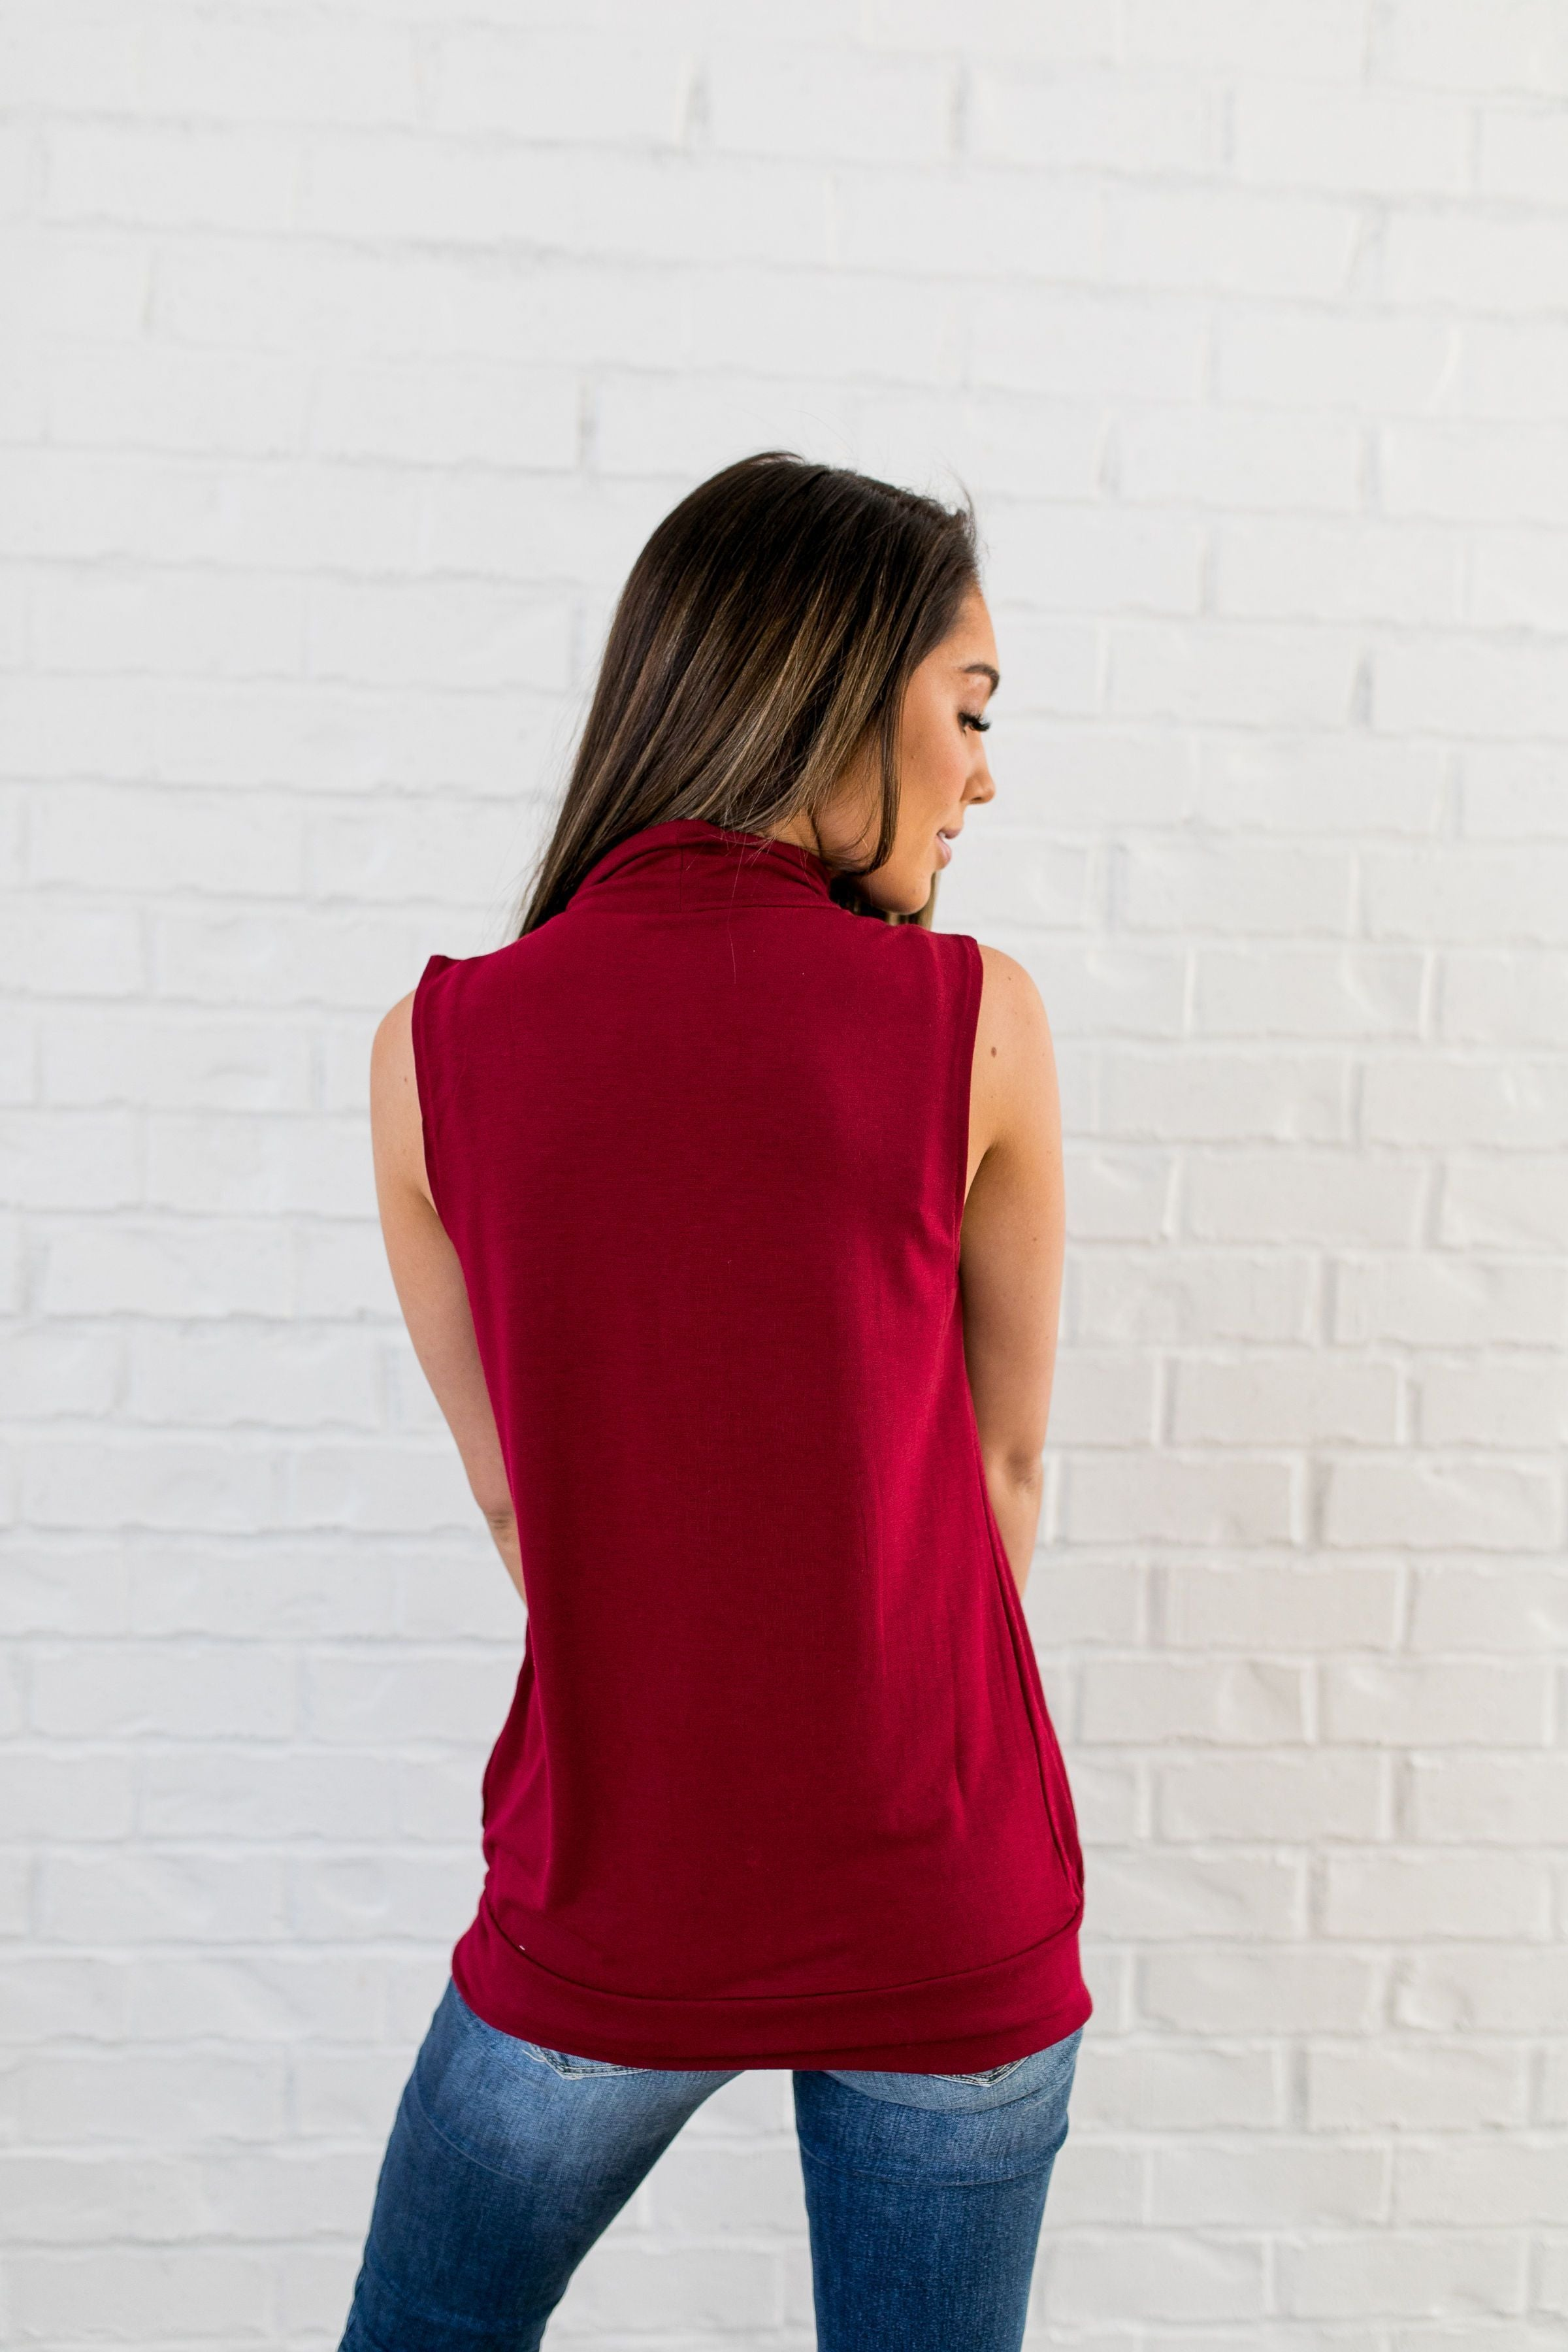 Pleats A Plenty Sleeveless Top In Burgundy - ALL SALES FINAL